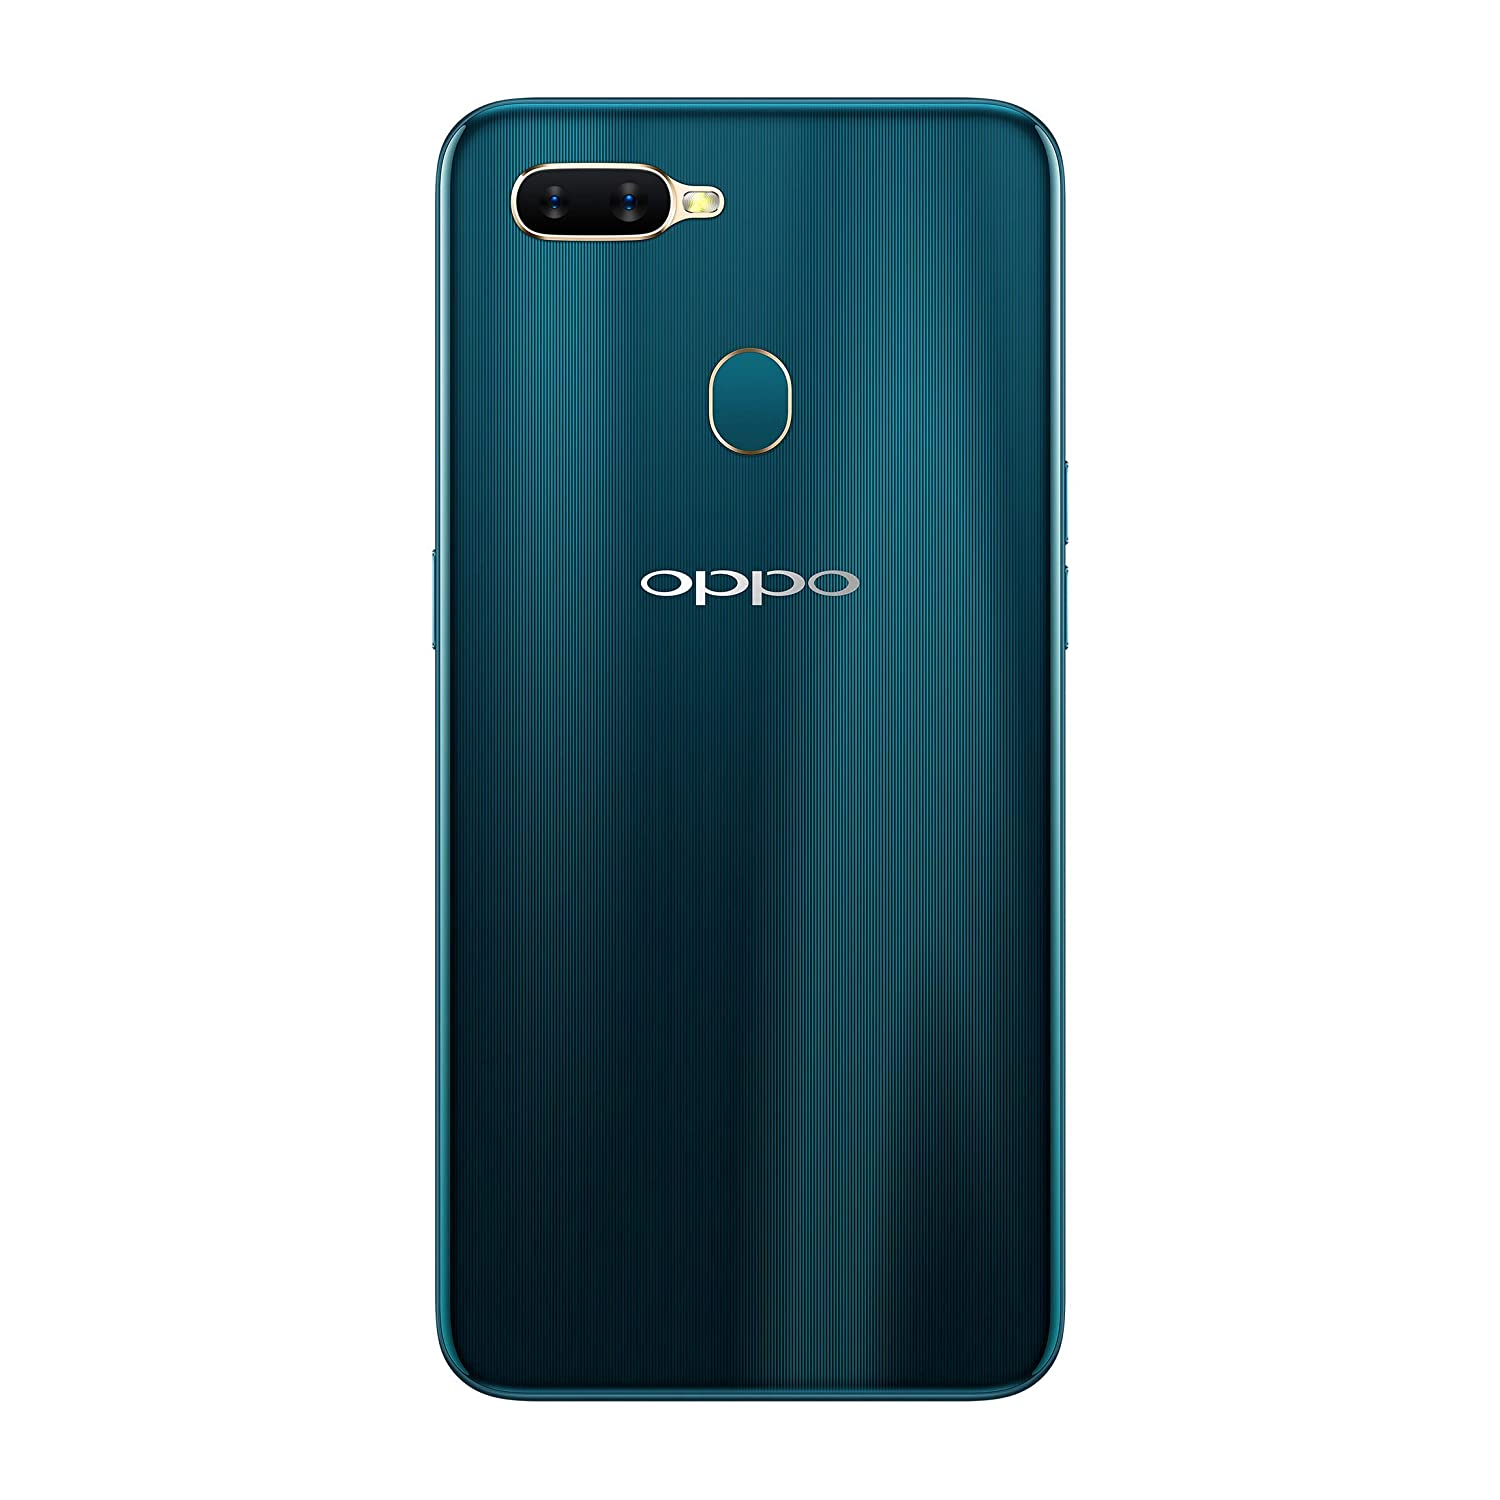 Oppo A5s Green 4gb Ram 64gb Storage With No Cost Emiadditional Exchange Offers